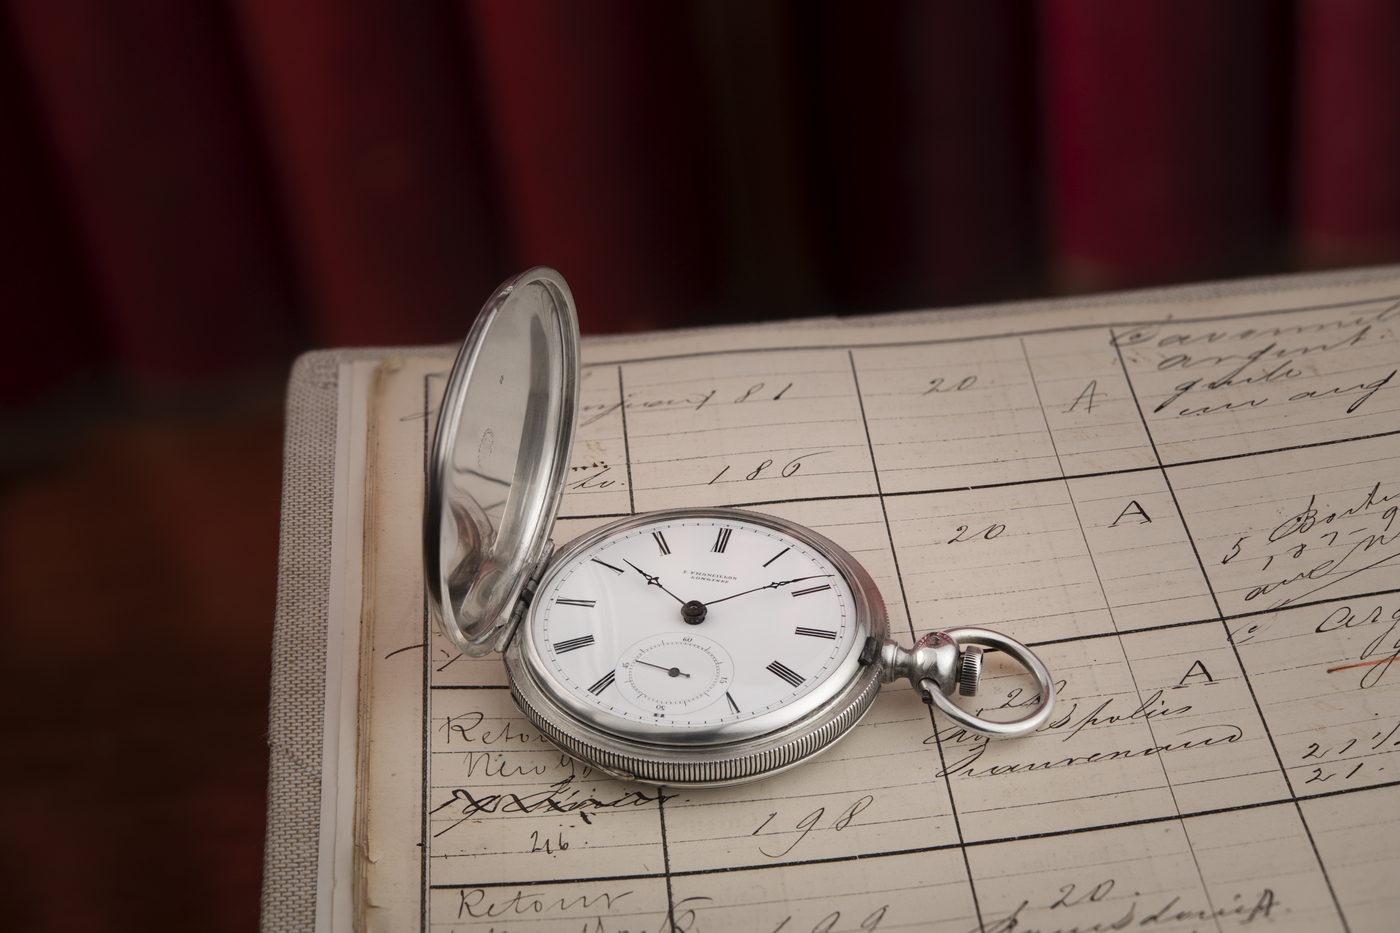 Longines Corporate Event: A collector finds the oldest Longines watch known to date, a historical discovery for the brand 4